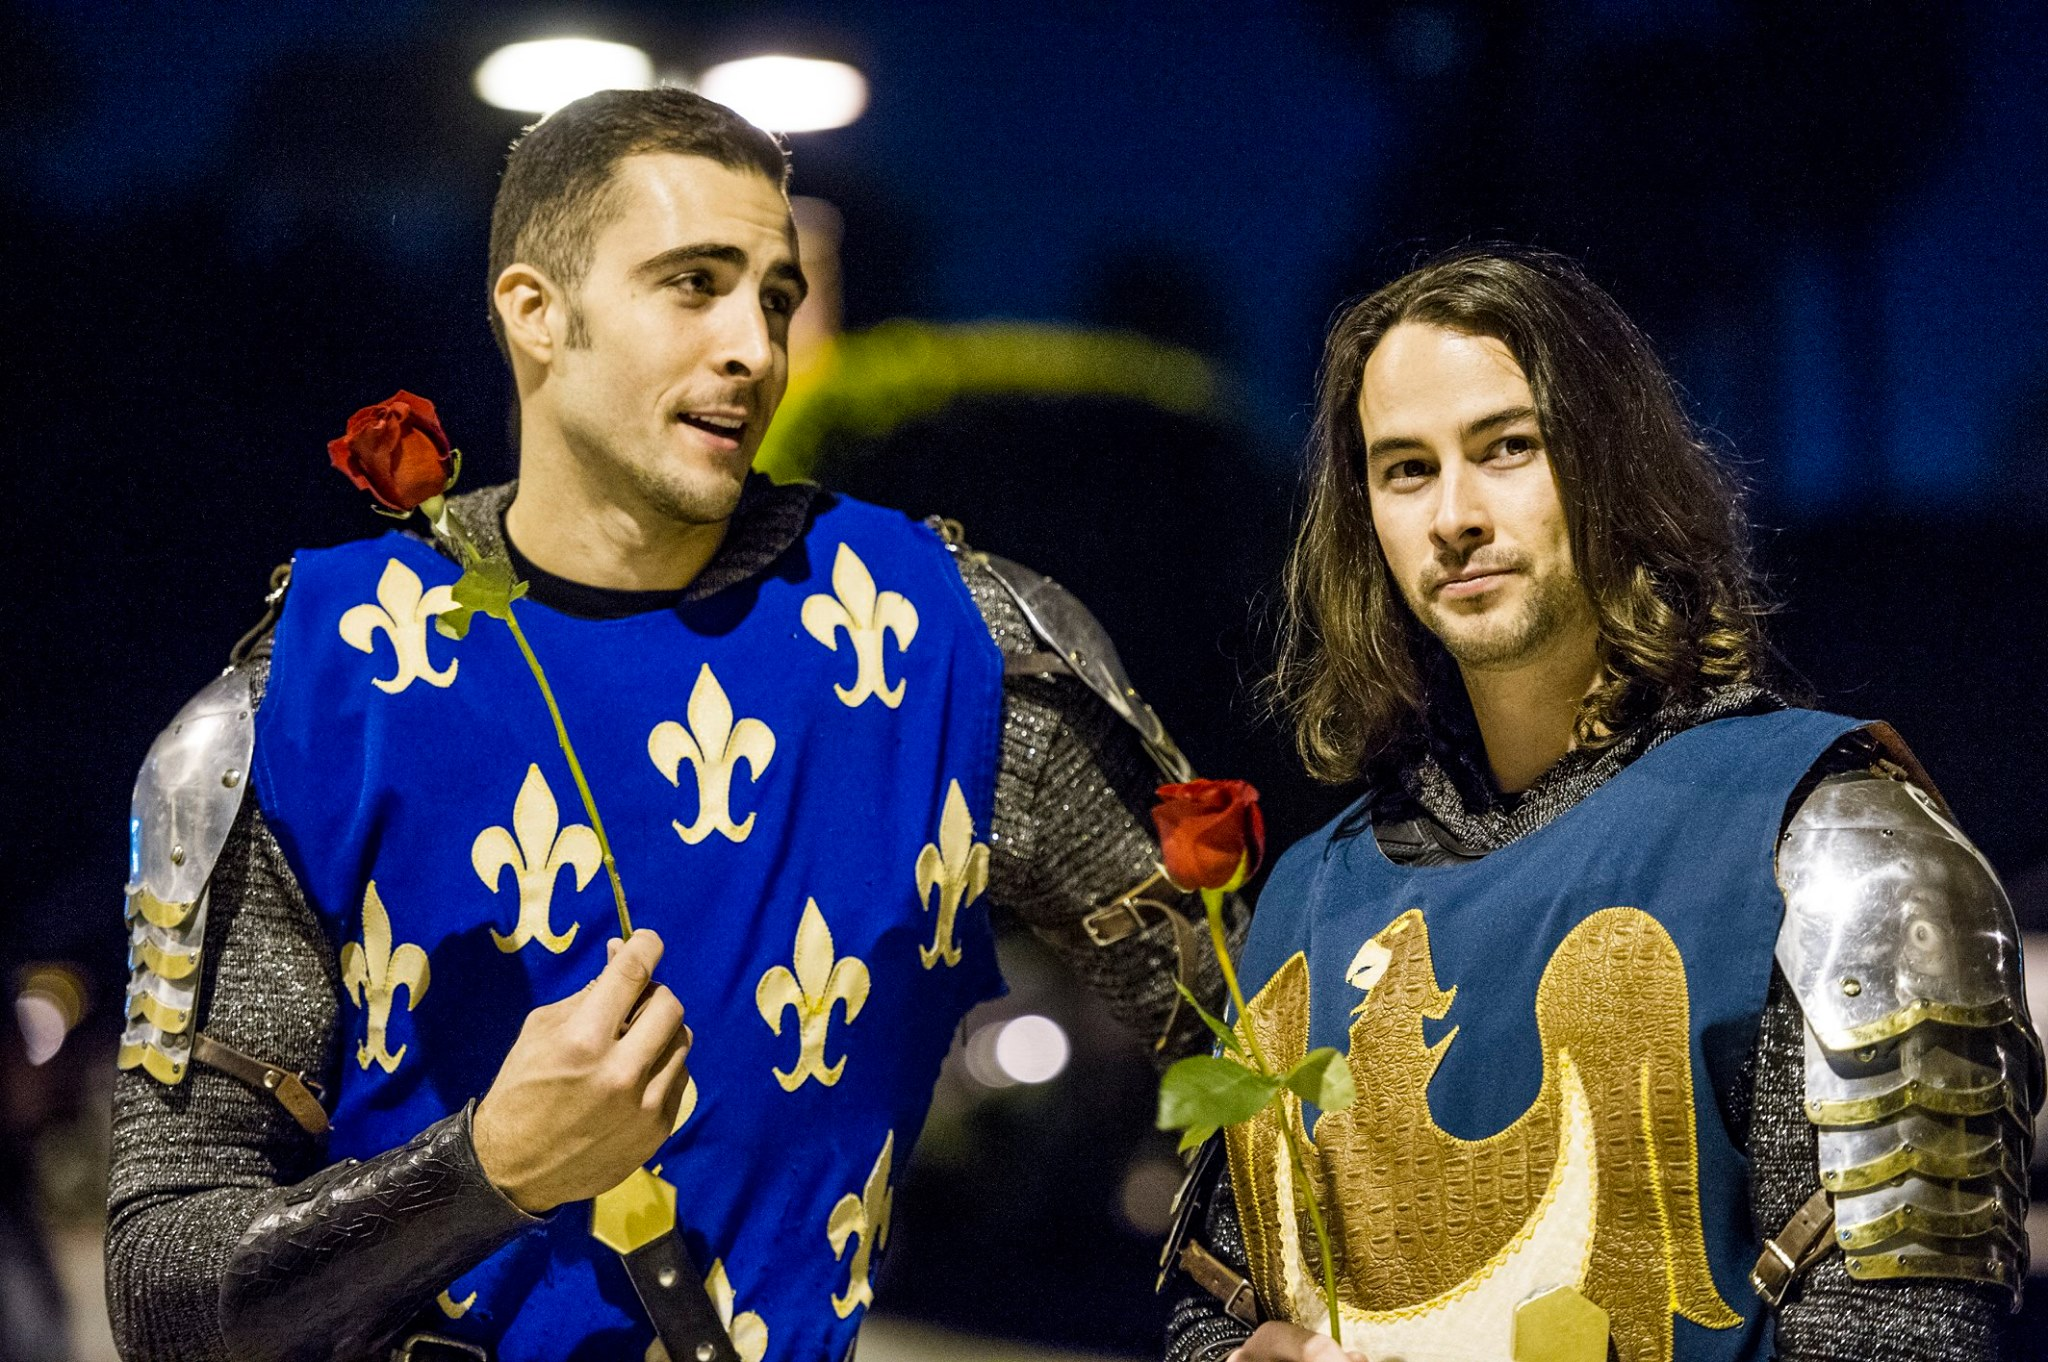 Knights with carnations 1.jpg